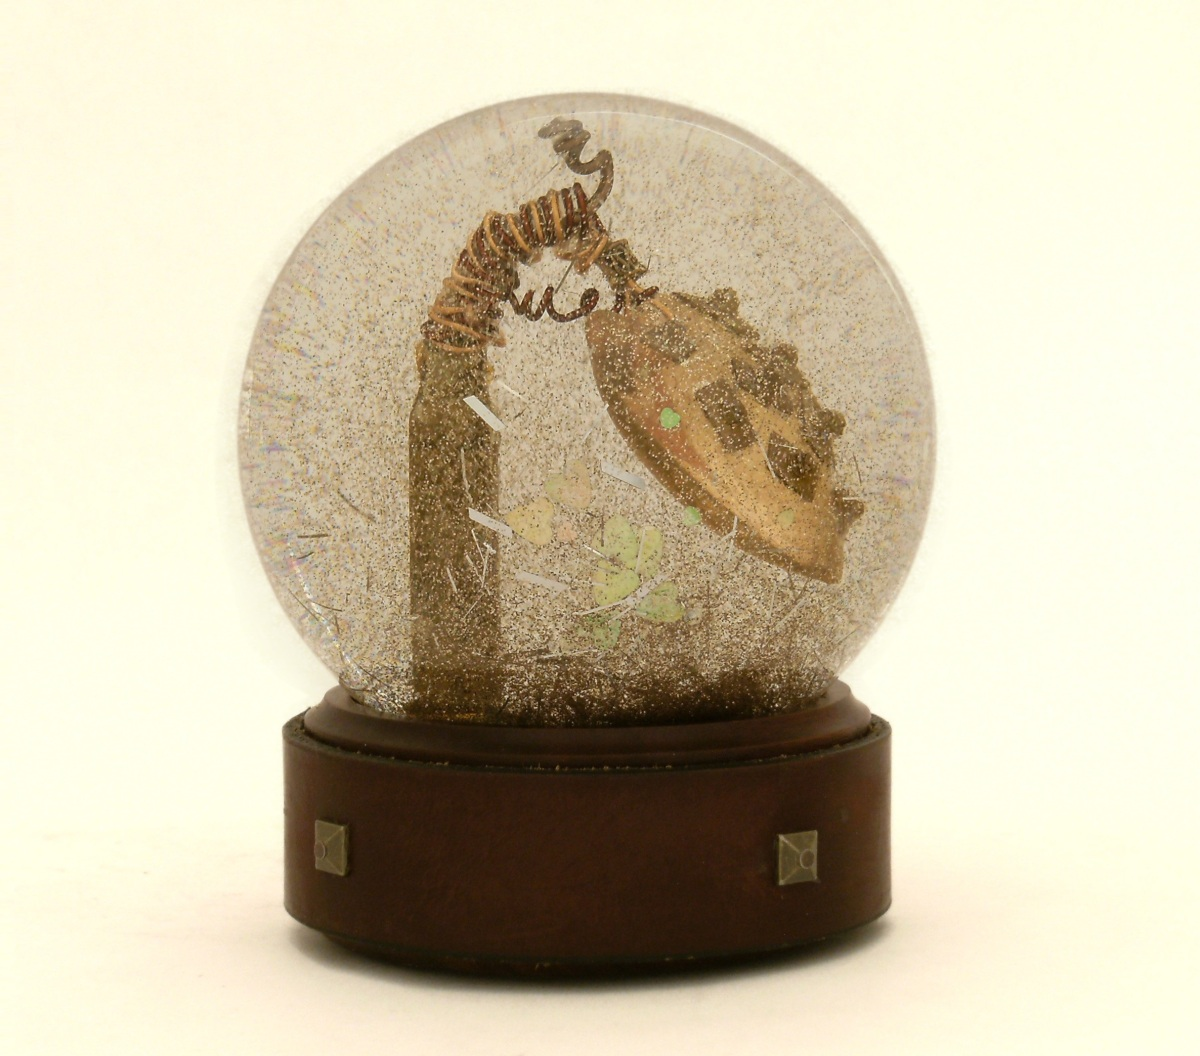 Armored Heart snow globe, Camryn Forrest Designs 2014